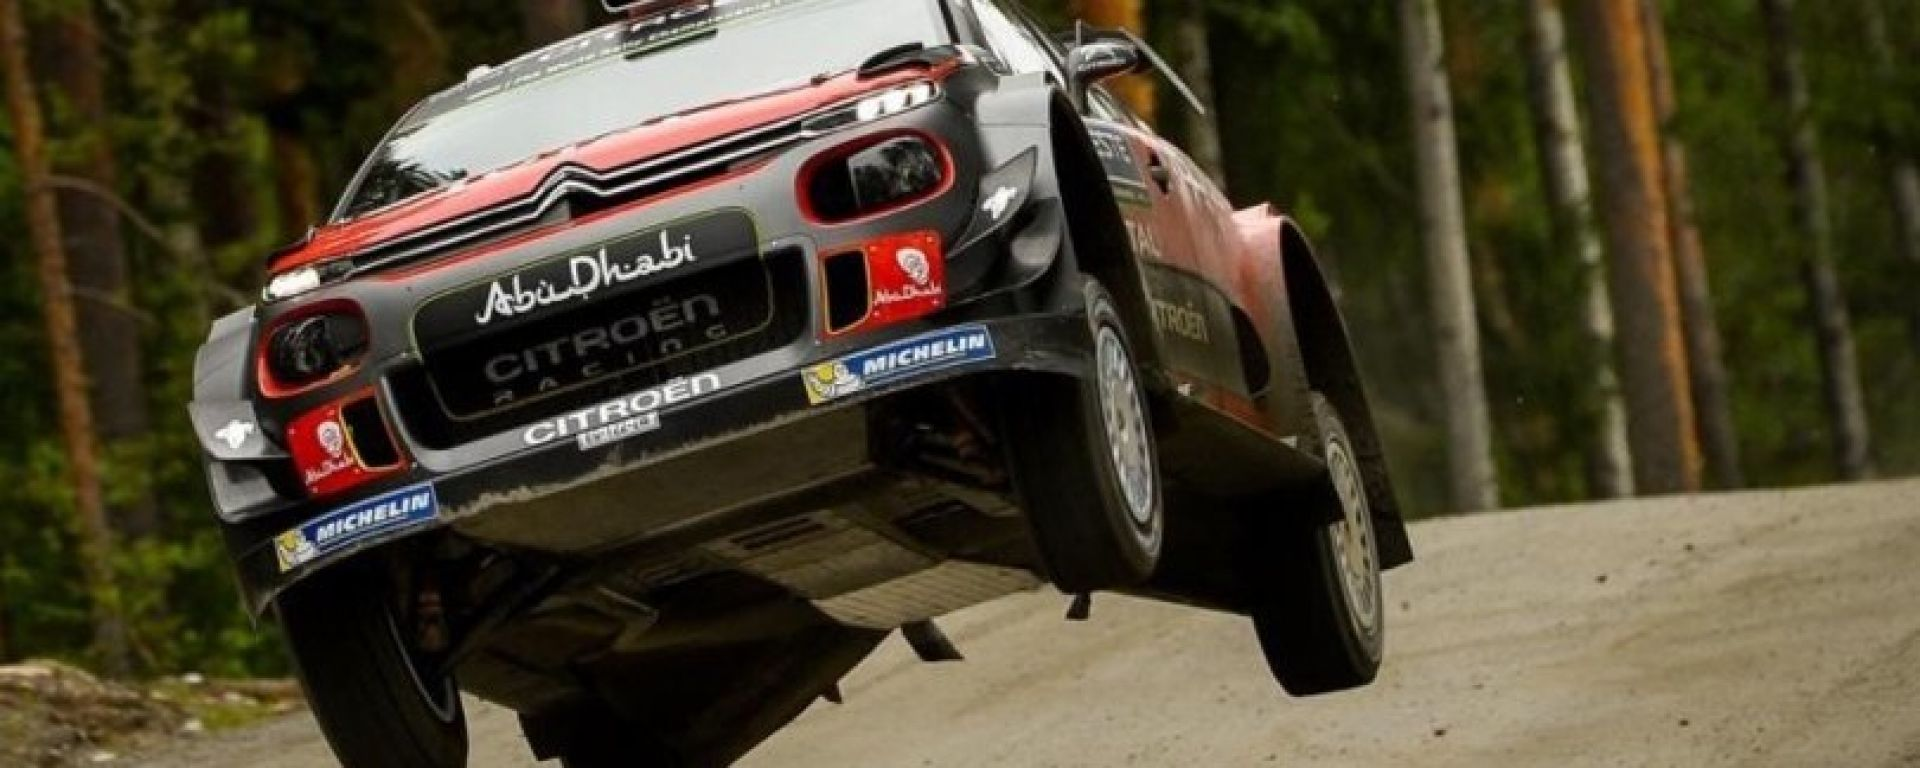 WRC 2018: le Citroen C3 all'attacco del Rally di Finlandia